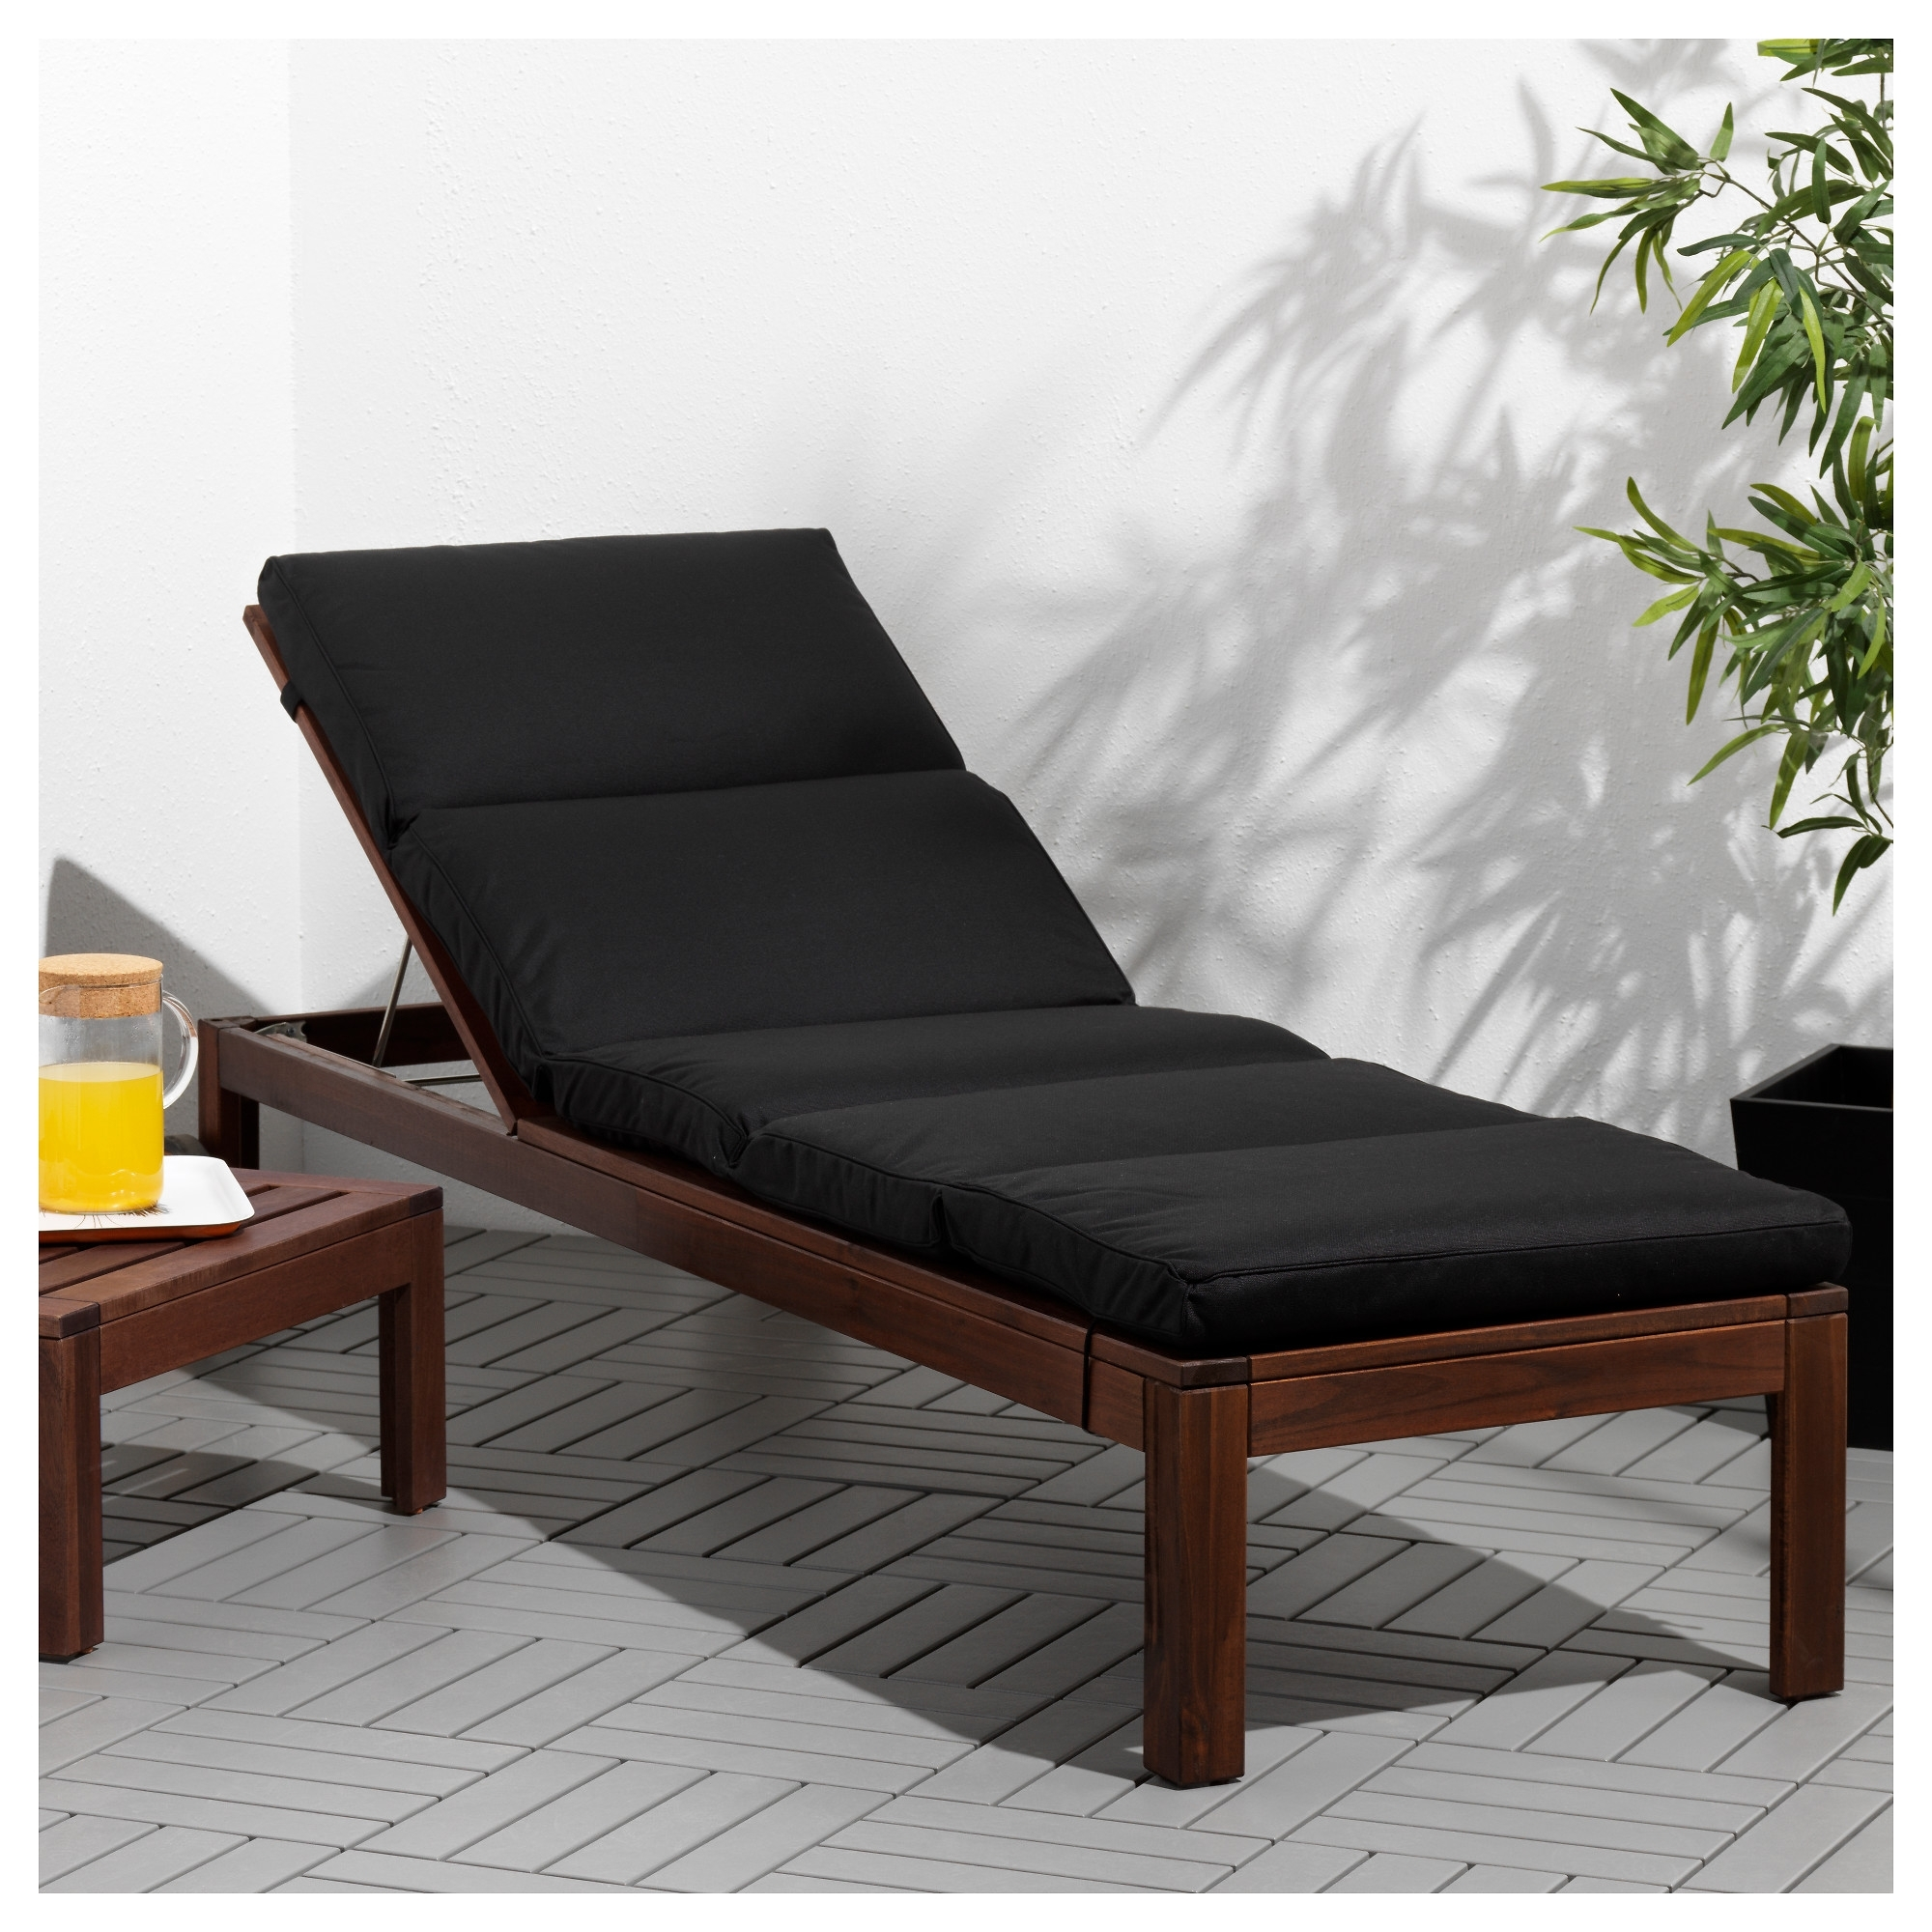 Preferred Äpplarö Chaise – Ikea In Ikea Outdoor Chaise Lounge Chairs (View 14 of 15)